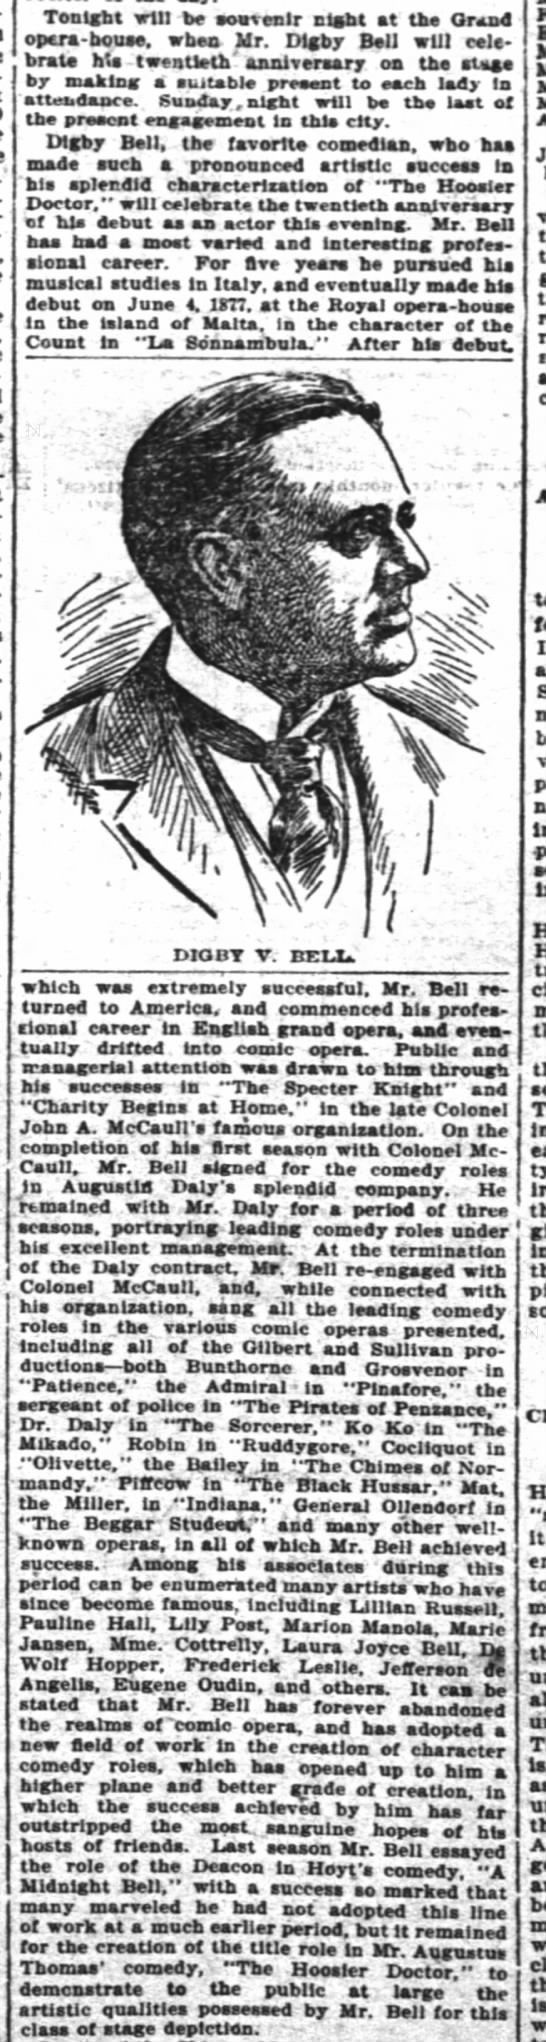 Digby Bell career in various comic operas, mention of DWH 5 June 1897 The Inter Ocean Chicago